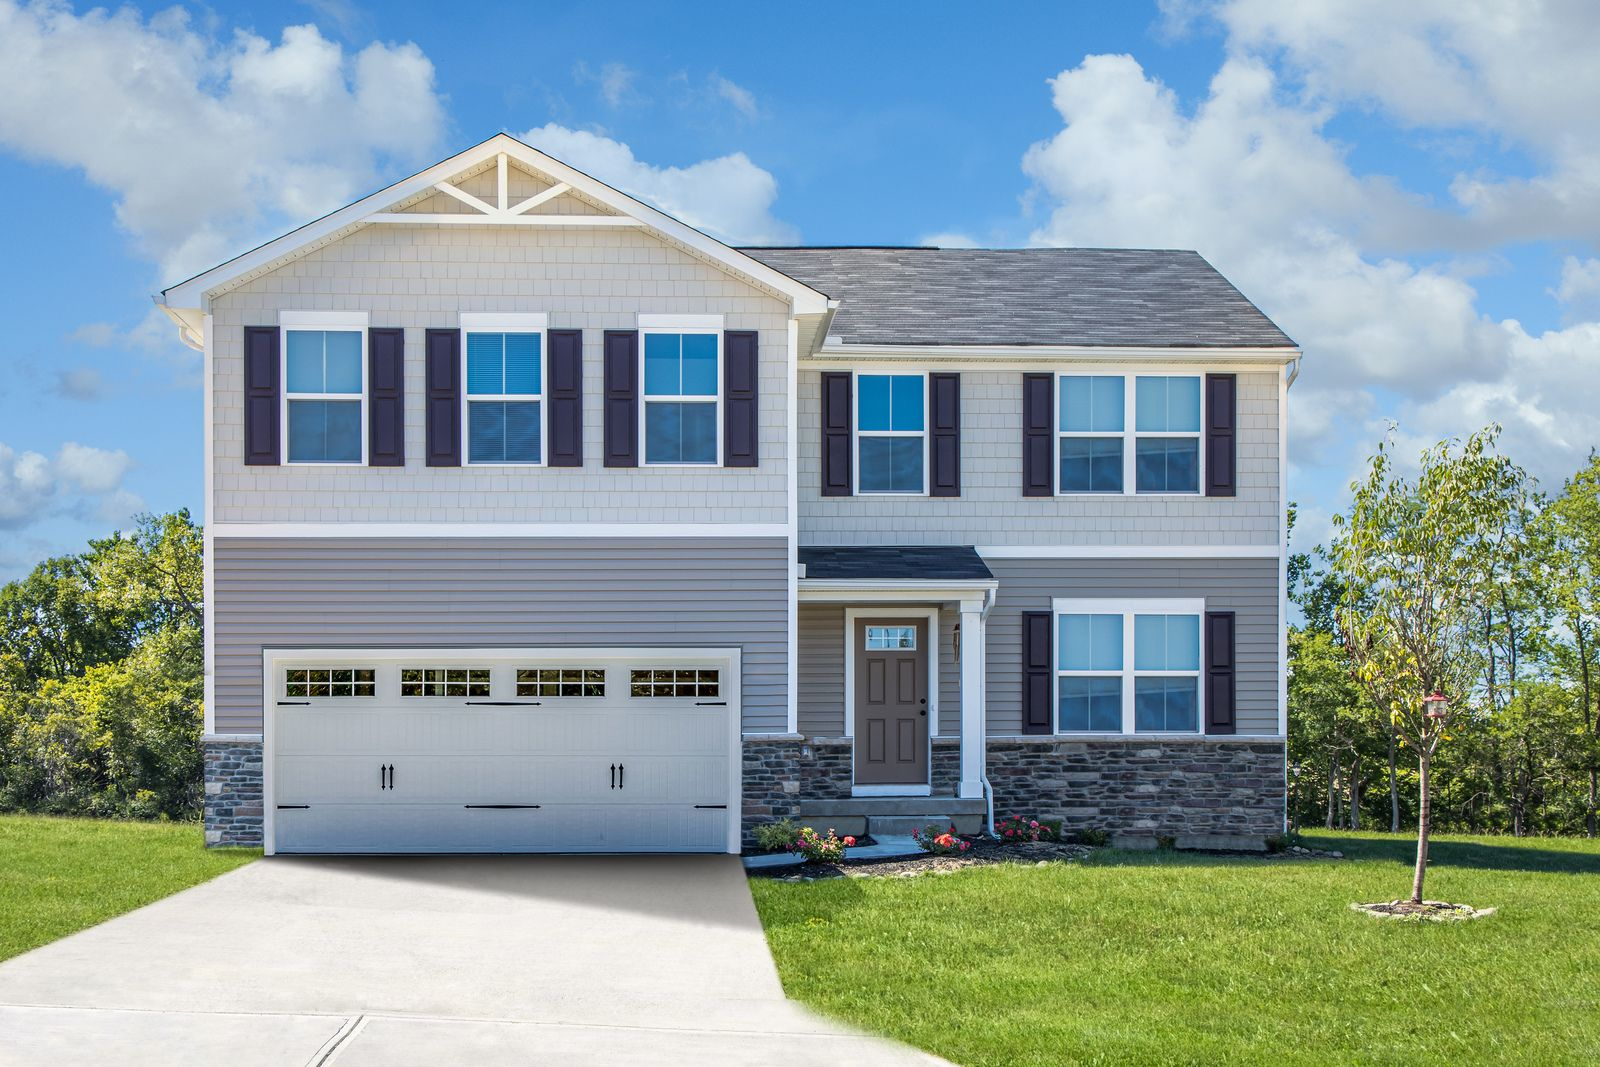 WELCOME HOME TO SAWYERS MILL 2-STORY:Most affordable new homes in Franklin Schools. 3-5 bedrooms and 2+ bathrooms on wooded, walk-out homesites! Easy commute to I-75. From the low $200s.Click here to schedule your visit!